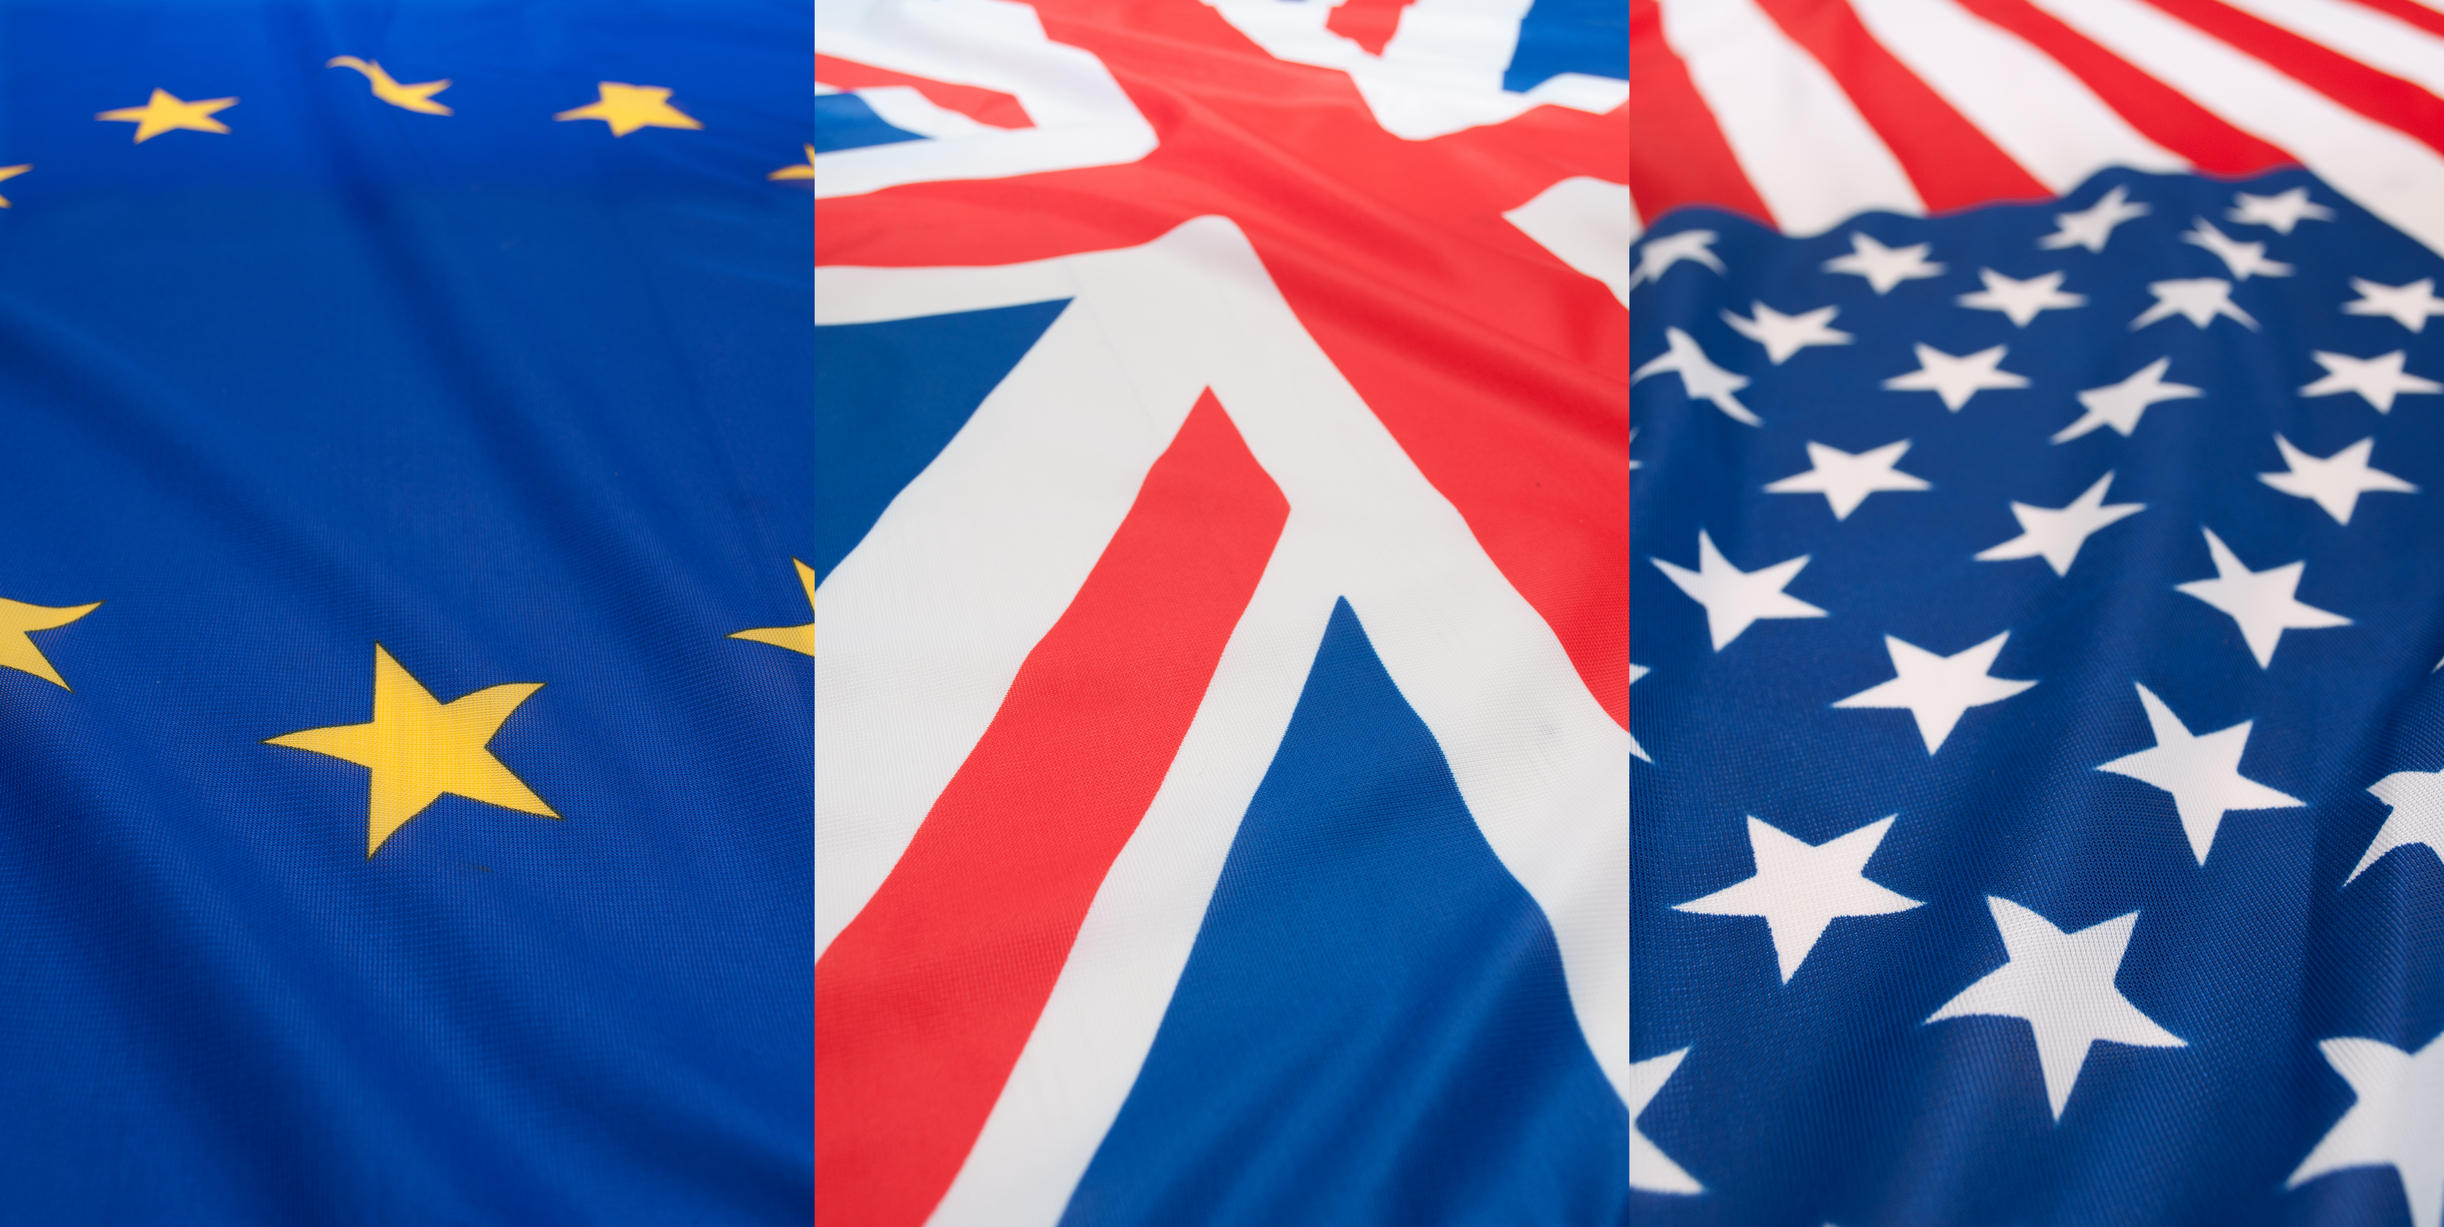 Review of the balance of competences between the UK and the EU